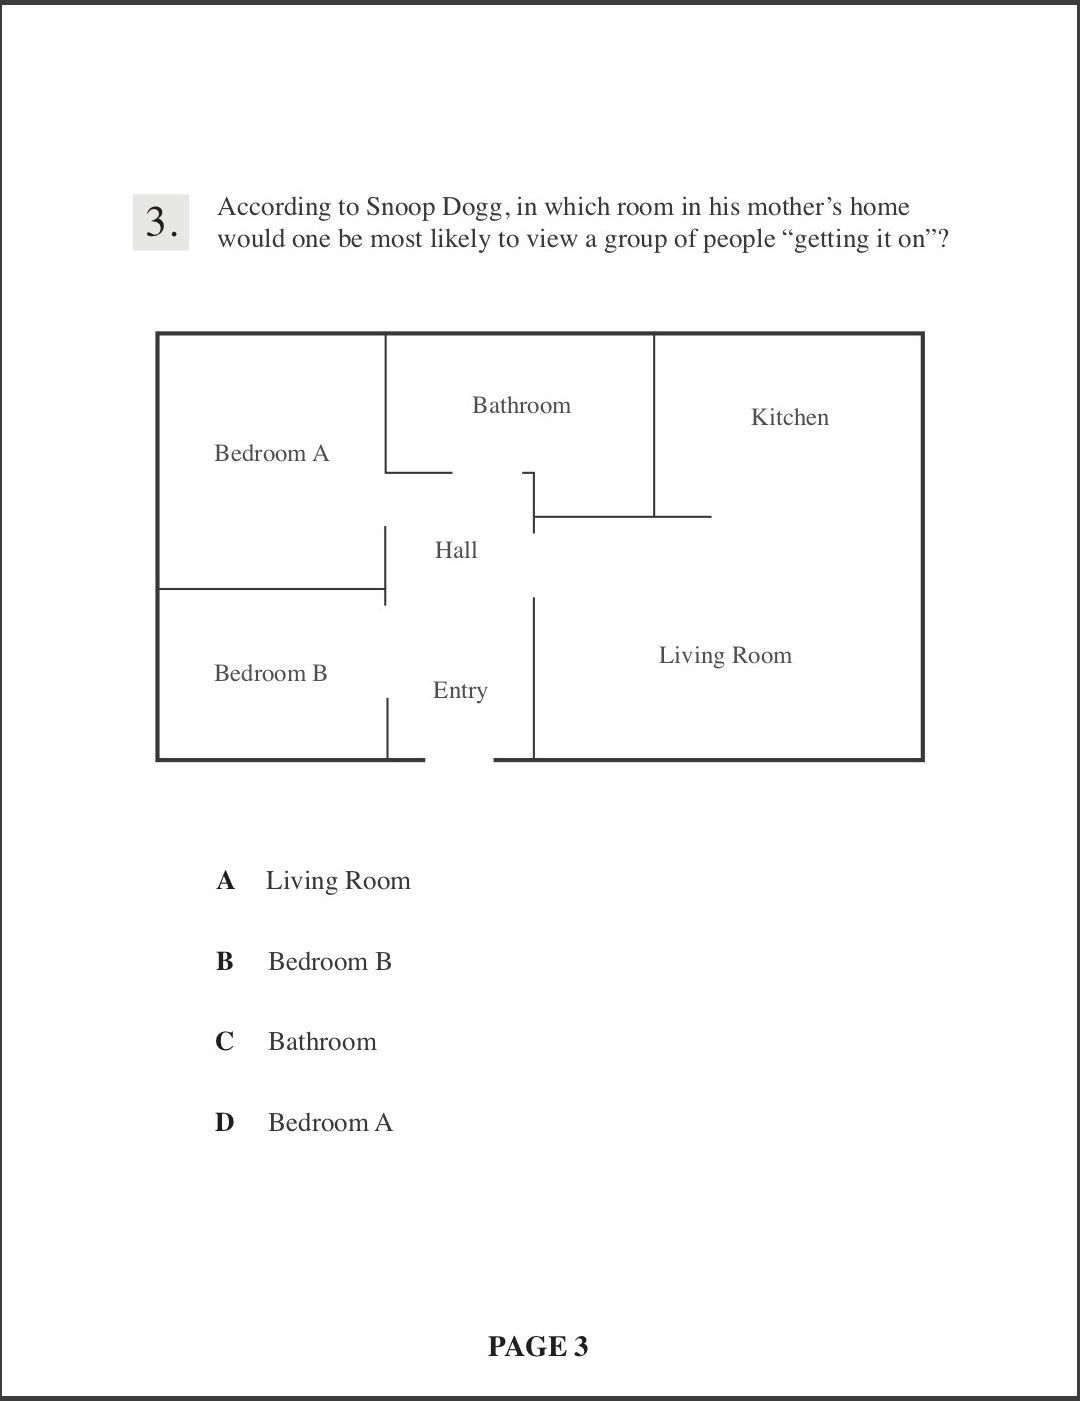 """Question: According to Snoop Dogg, in which room in his mother's home would one be most likely to view a group of people """"getting it on""""? Image: a floor plan of a house. Answer choices: A. Living room, B. Bedroom B, C. Bathroom, D. Bedroom A"""